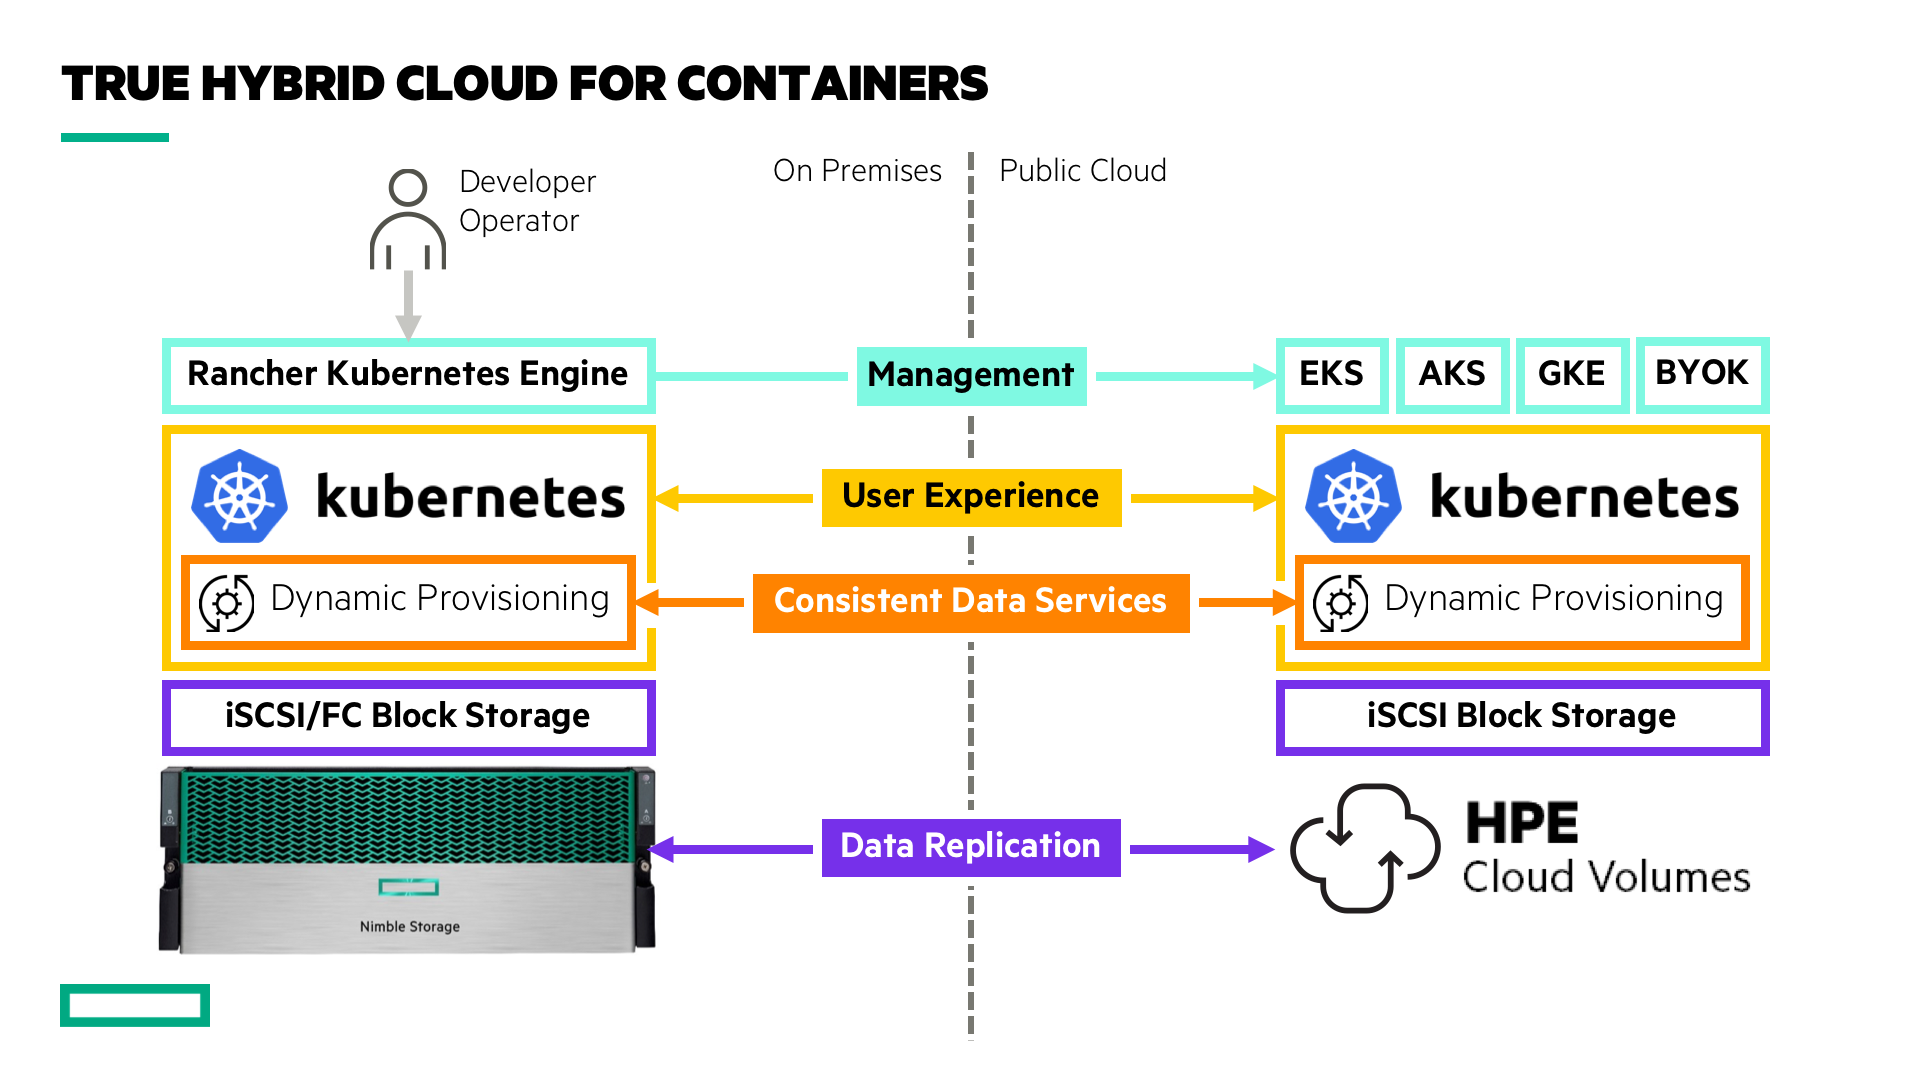 True Hybrid Cloud for Containers